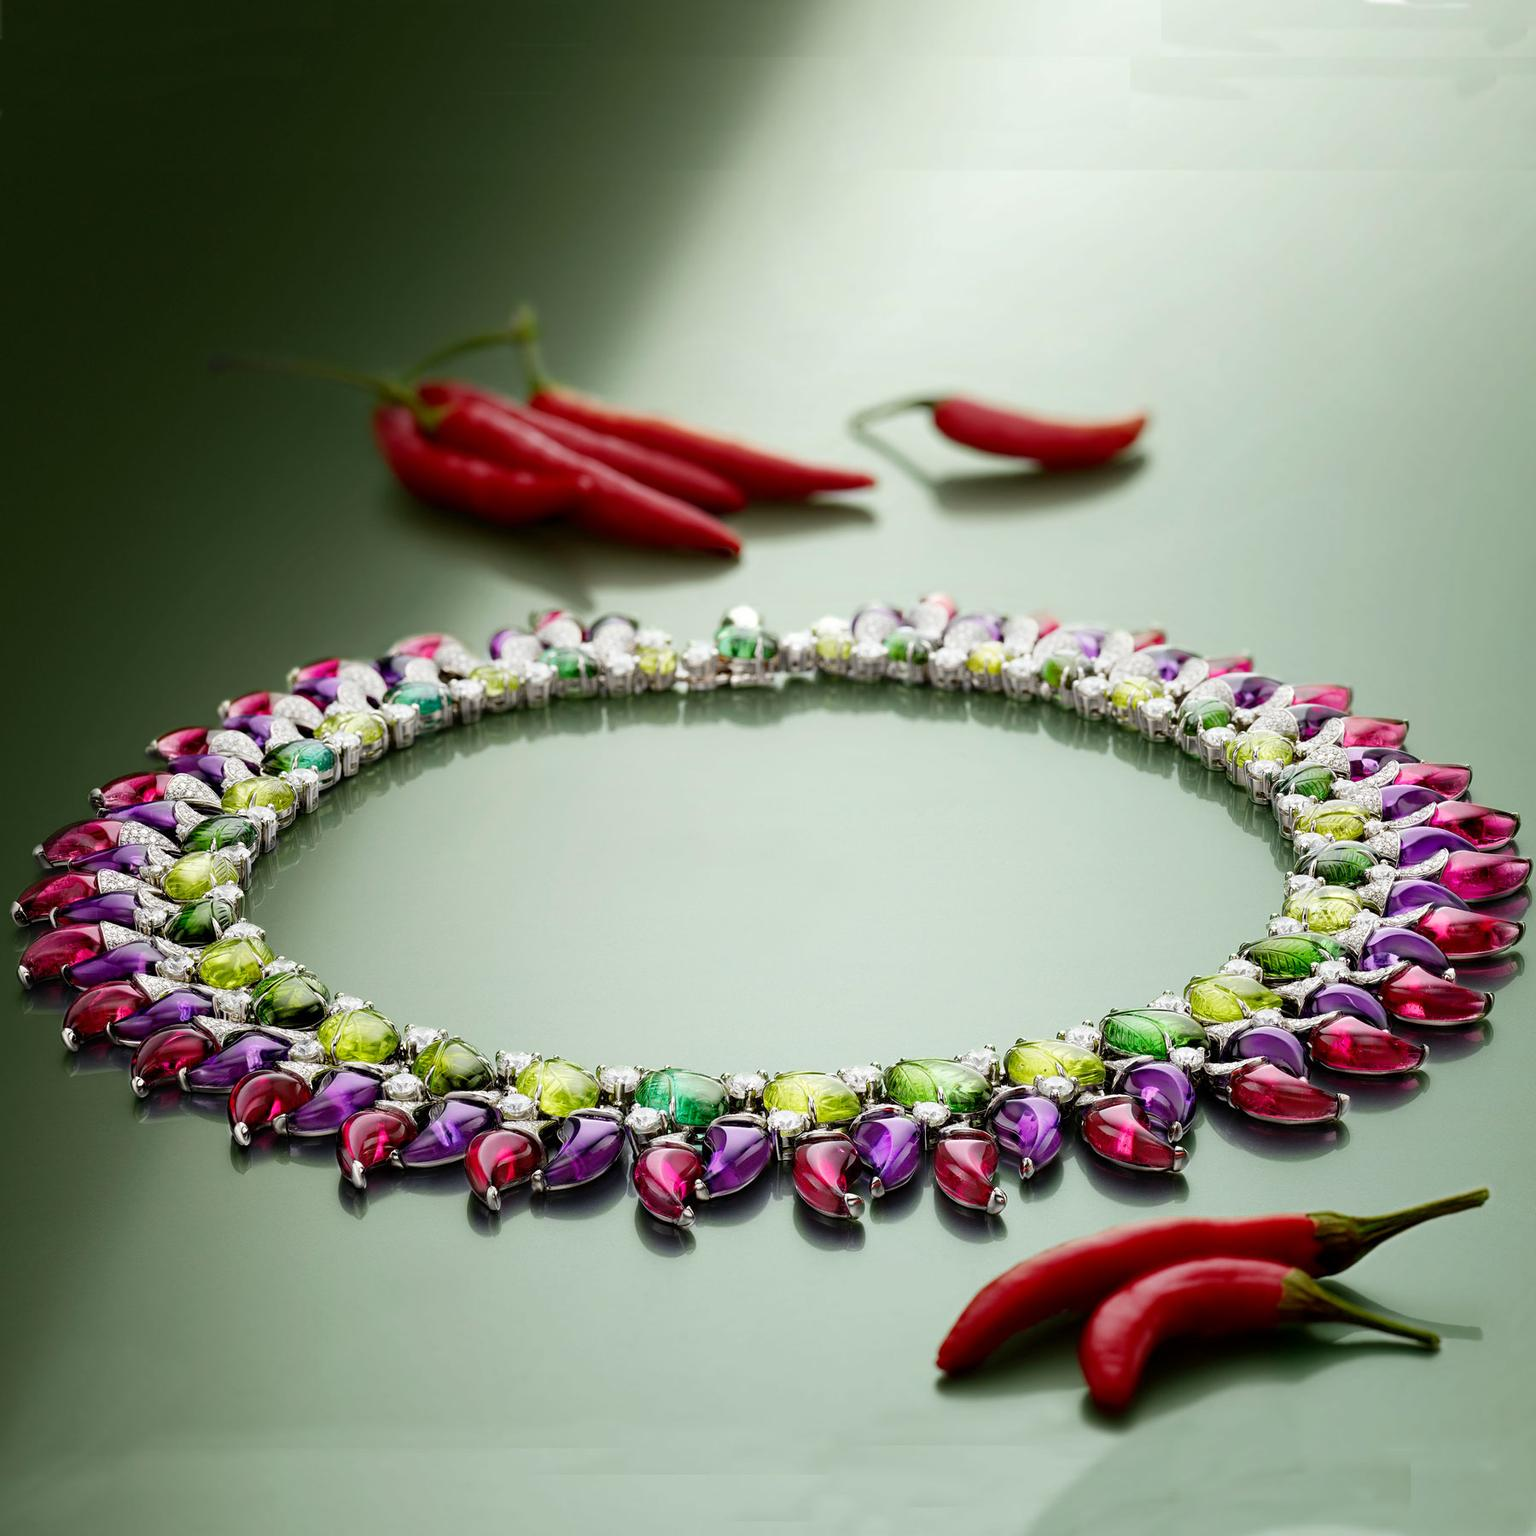 Bullgari Festa Peperoncini chili pepper high jewellery necklace